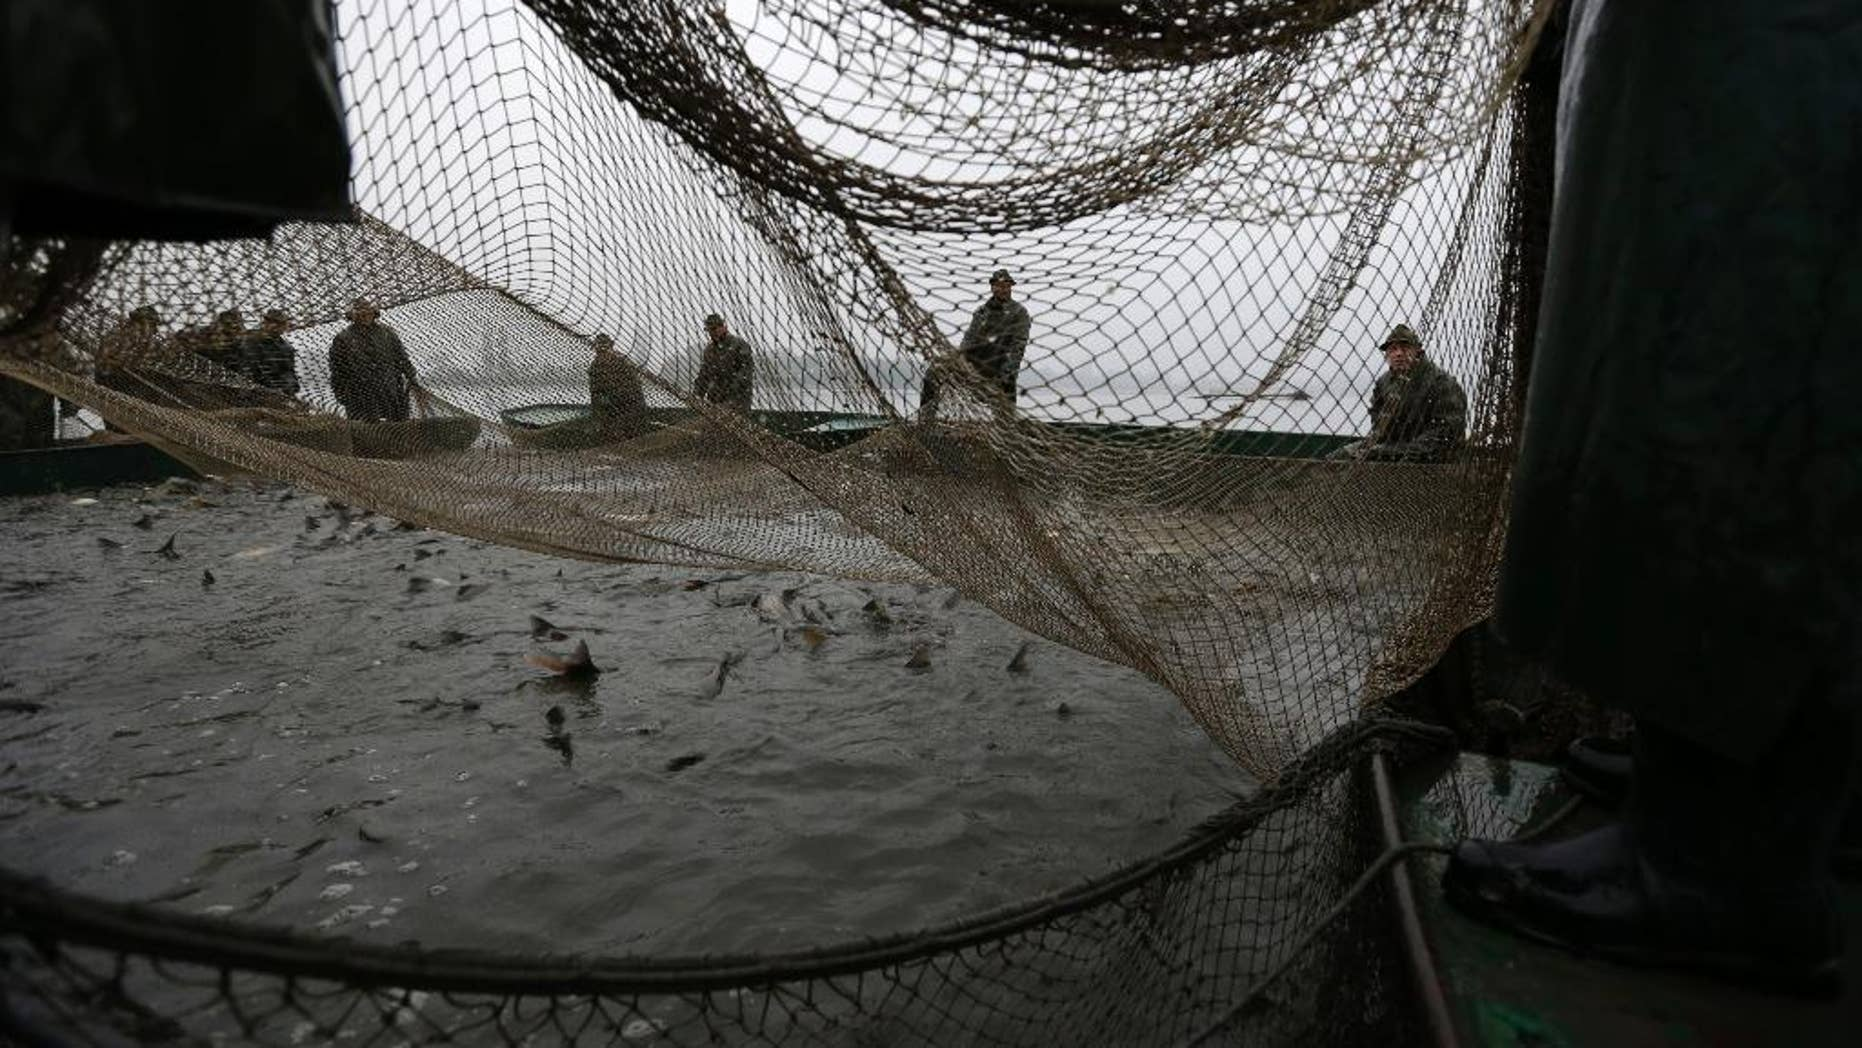 Fishermen pull the net during a traditional fish haul of the Vrkoc pond near the town of Pohorelice, Czech Republic, Saturday, Oct. 25, 2014. Fishermen use the traditional, centuries old way of catching the local carp considered by Czechs a delicate Christmas meal. (AP Photo/Petr David Josek)